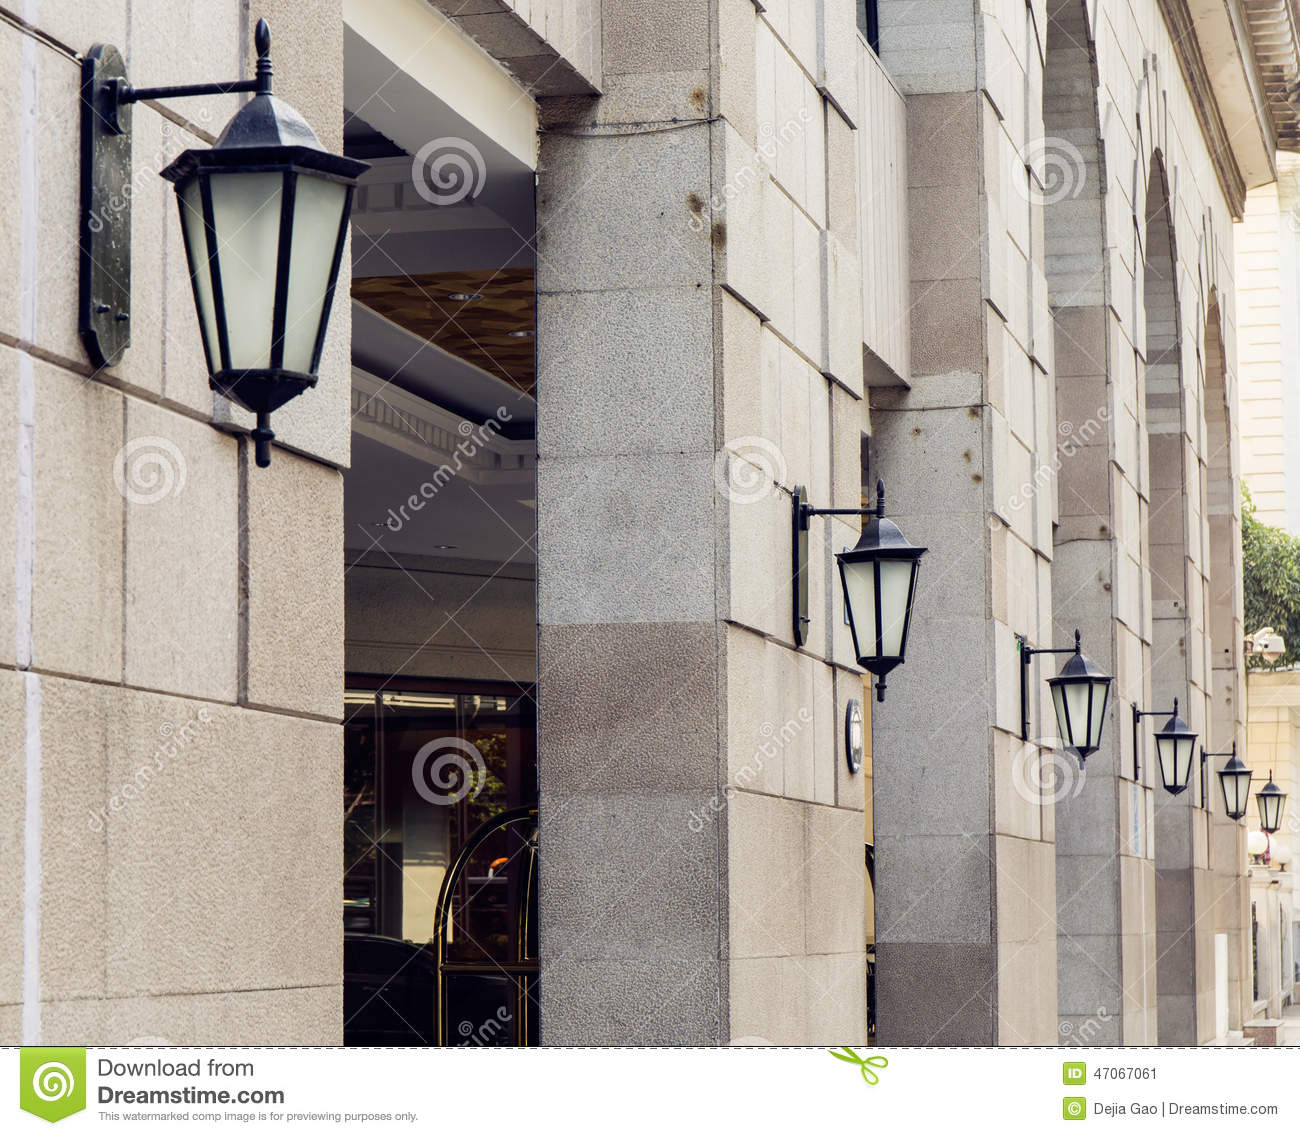 Wall Street S Bright Lights : Outdoor Street Light Wall Lamp Road Lighting Stock Photo - Image: 47067061